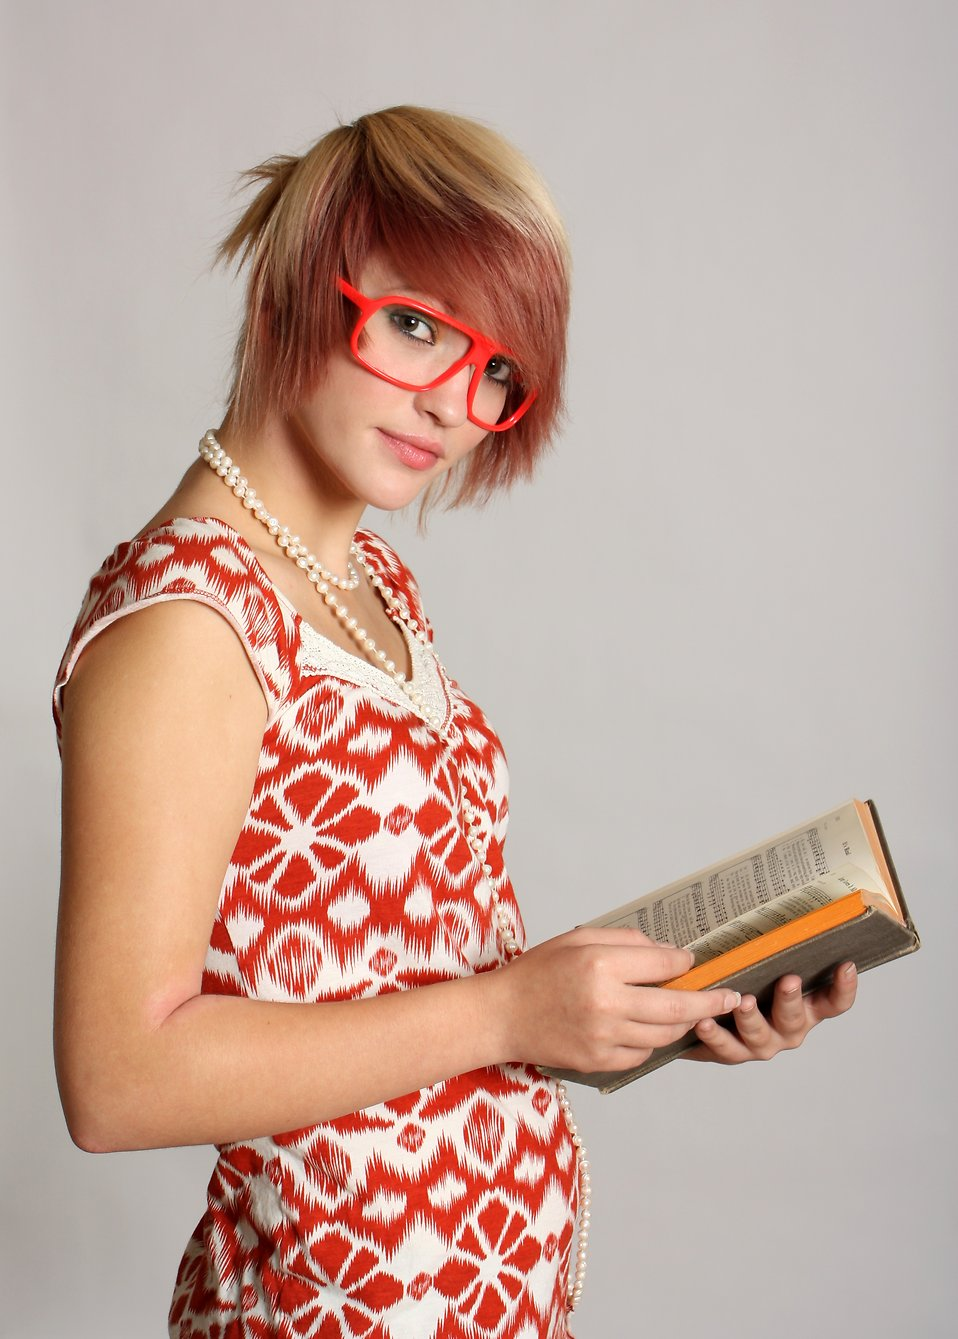 A beautiful smart young girl with glasses reading a book : Free Stock Photo